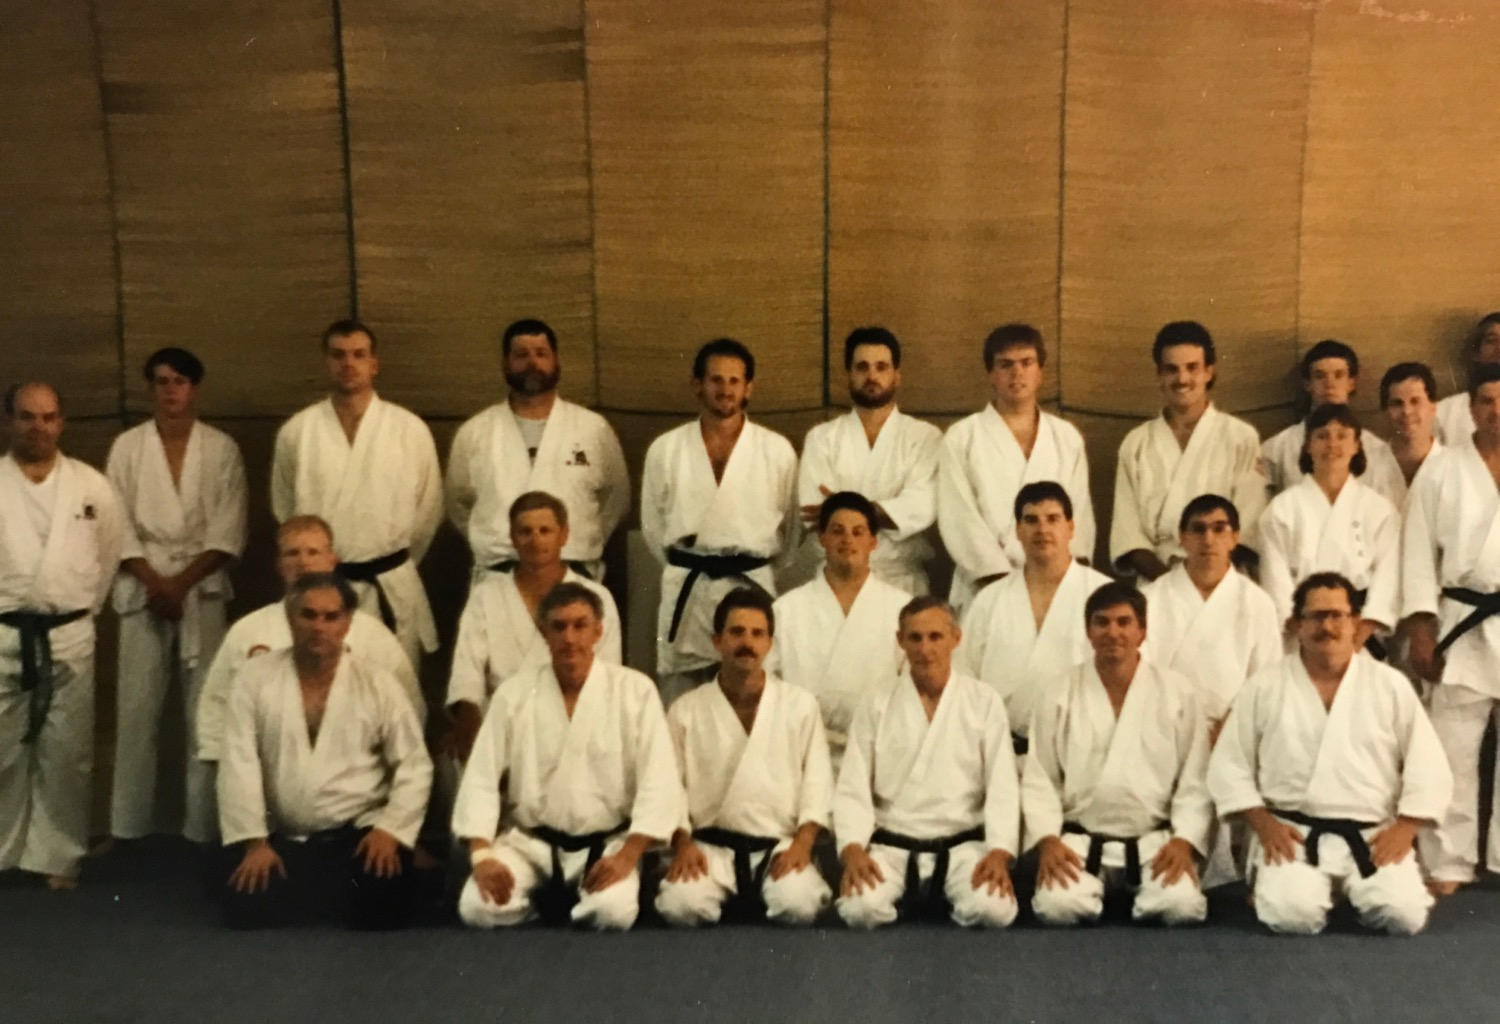 Mr. Mumpower conducts a seminar for Aikido Black Belts in Charlotte in the 1990's. Sensei Larry Beal is in the second row and second to Mr. Mumpower's right.